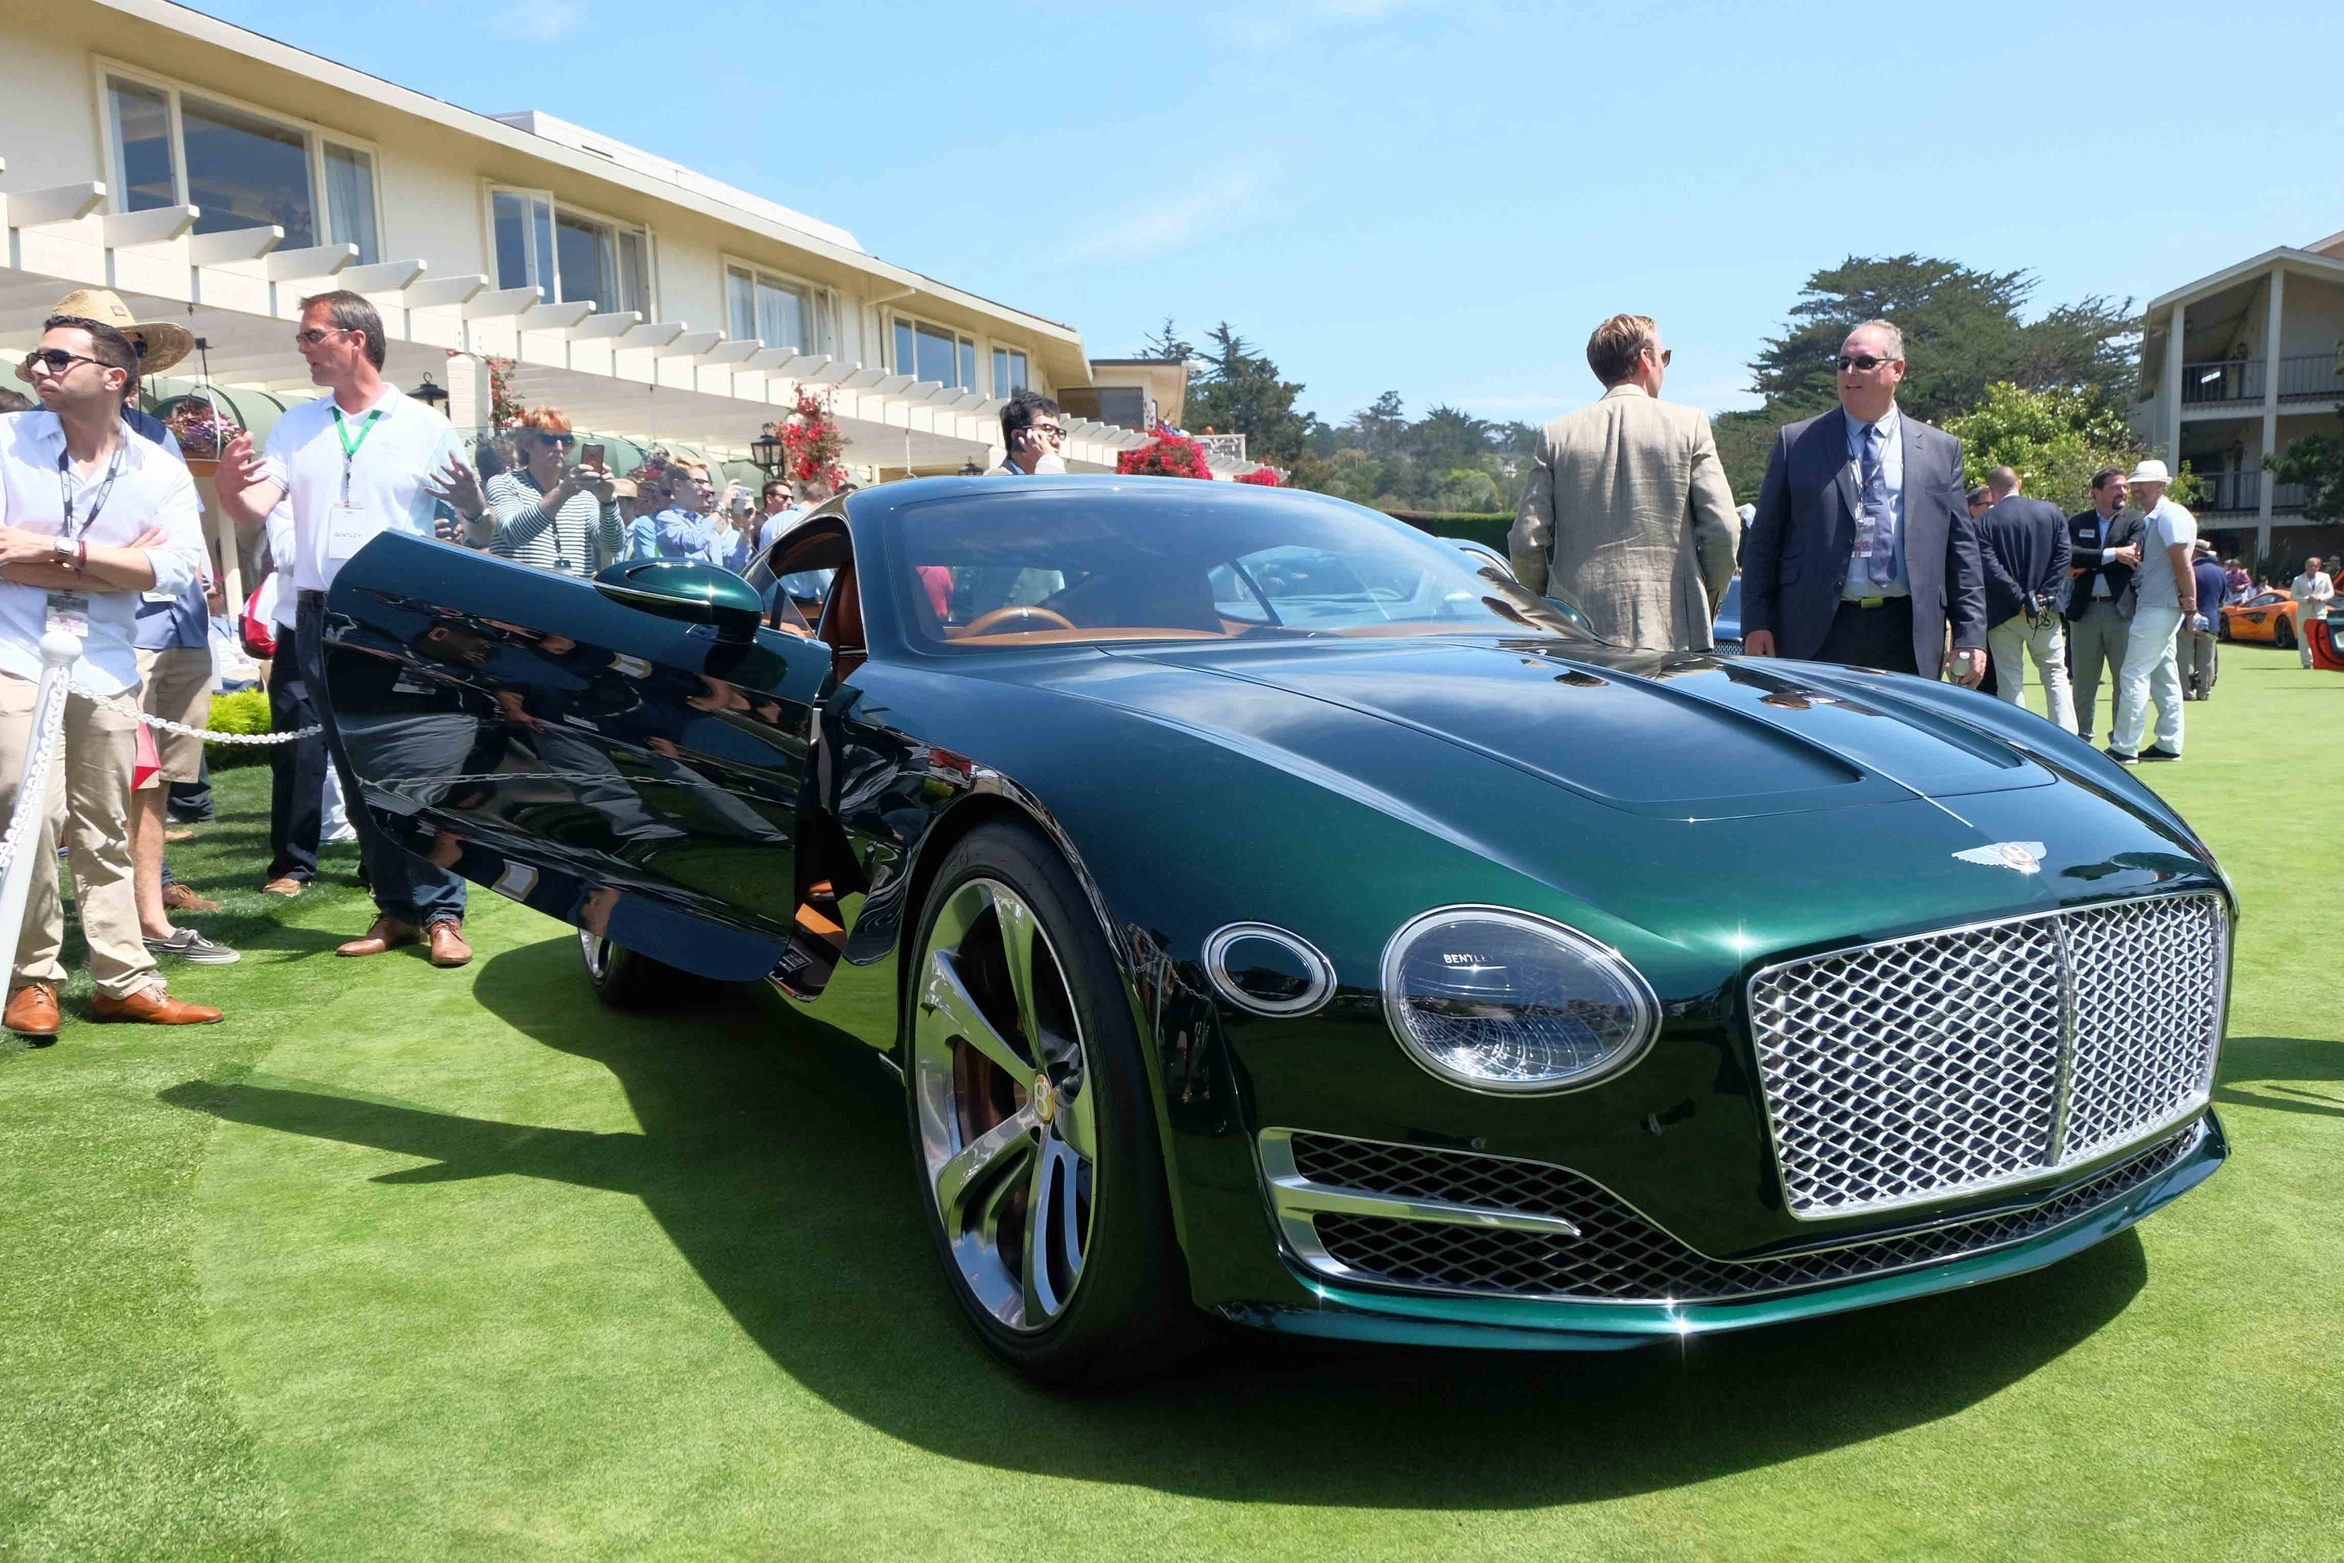 Bentley EXP 10 Speed 6 Concept (2014)